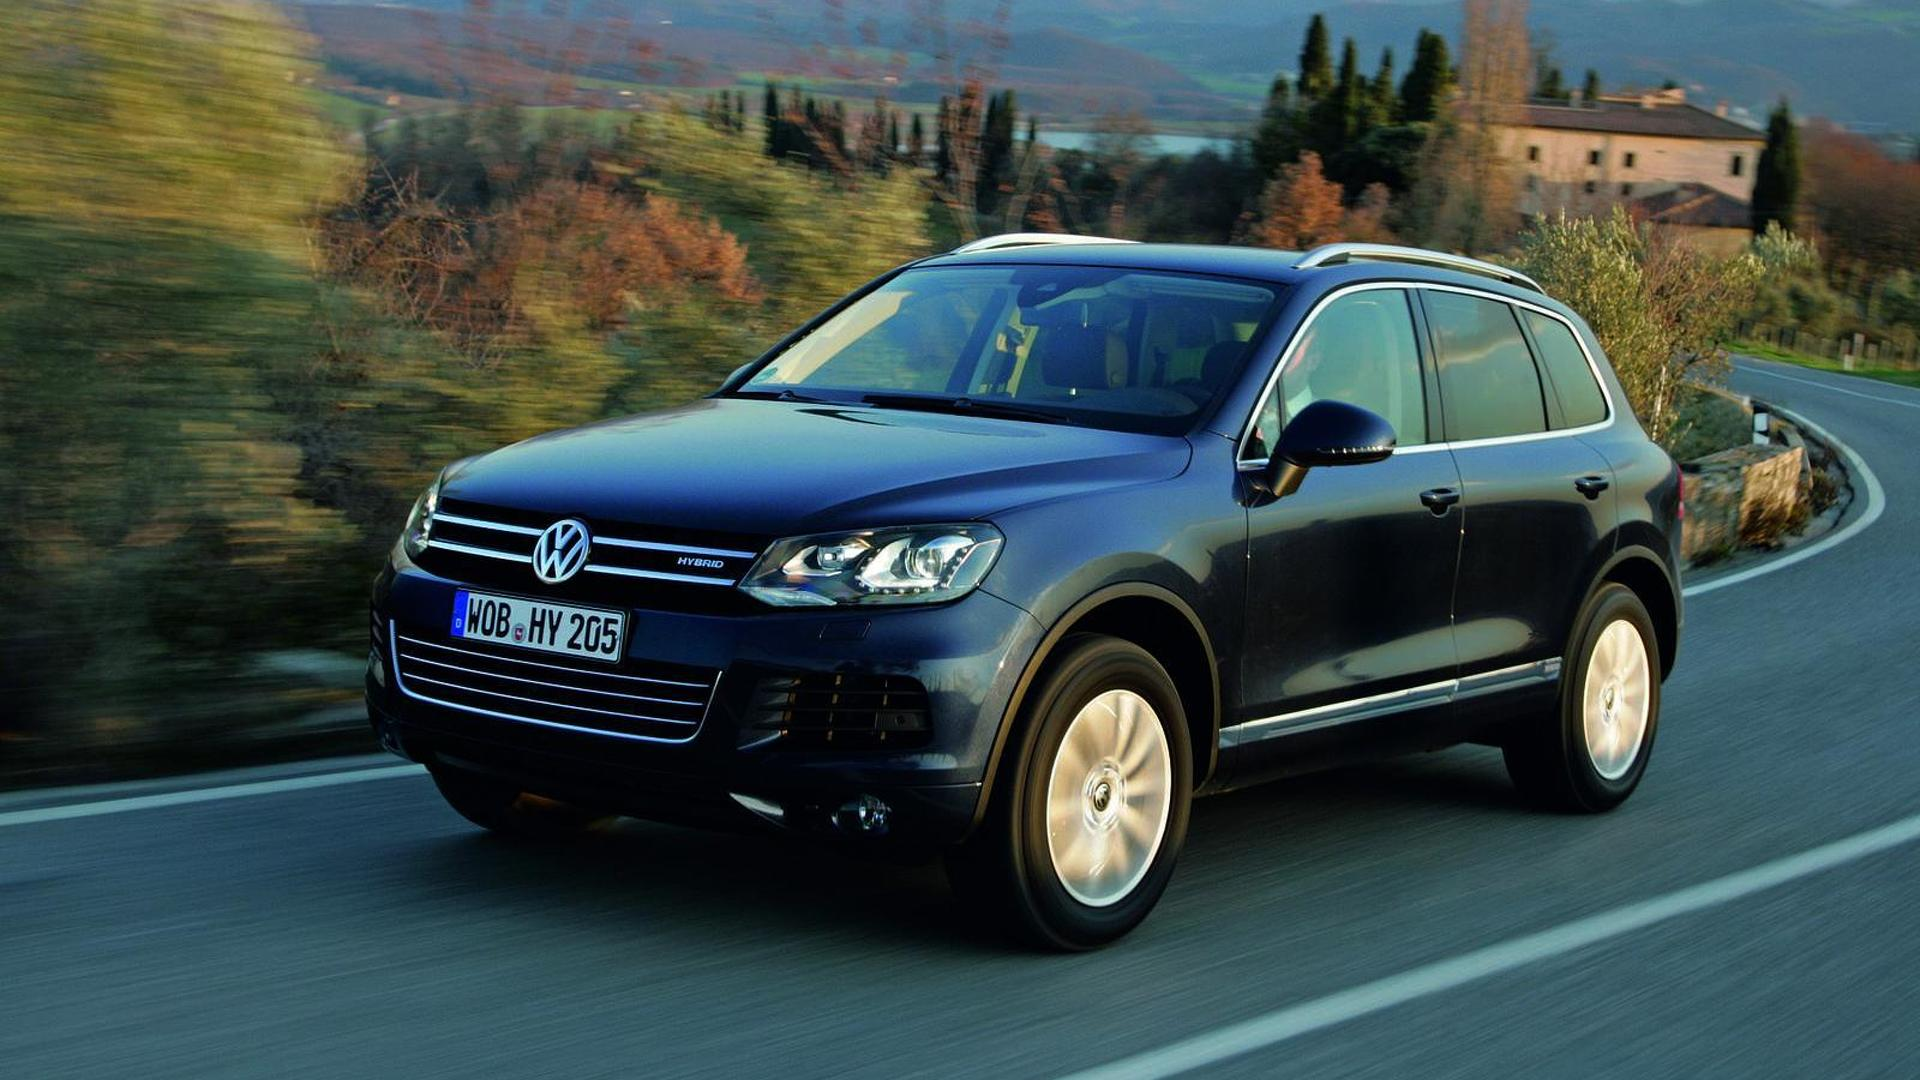 Volkswagen working on 7-seat crossover/SUV for U.S.